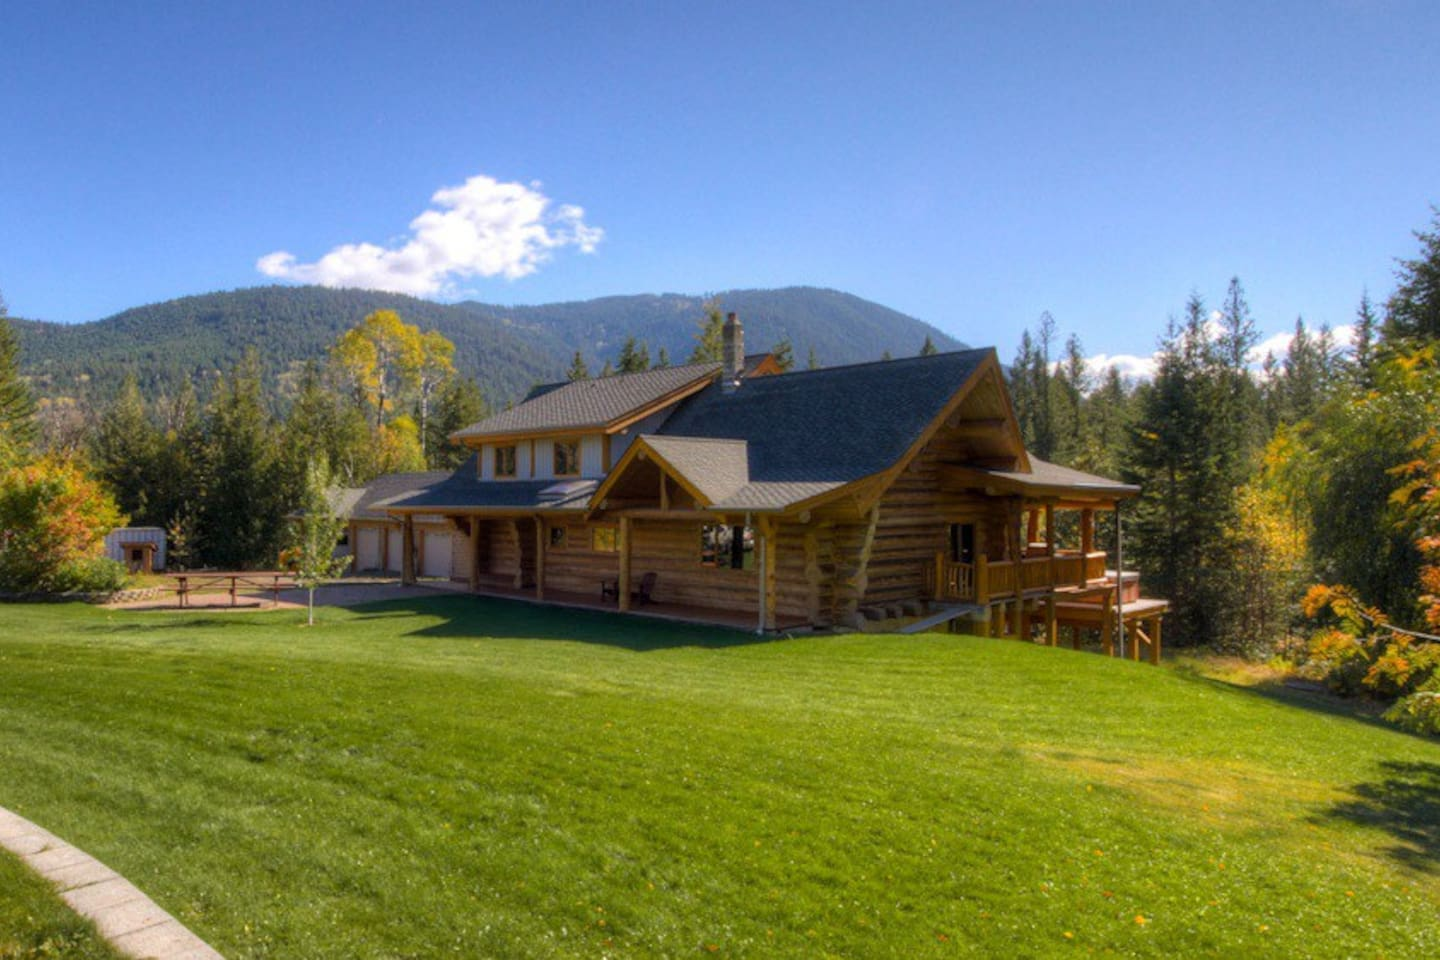 Our Log House was custom built with trees from the property